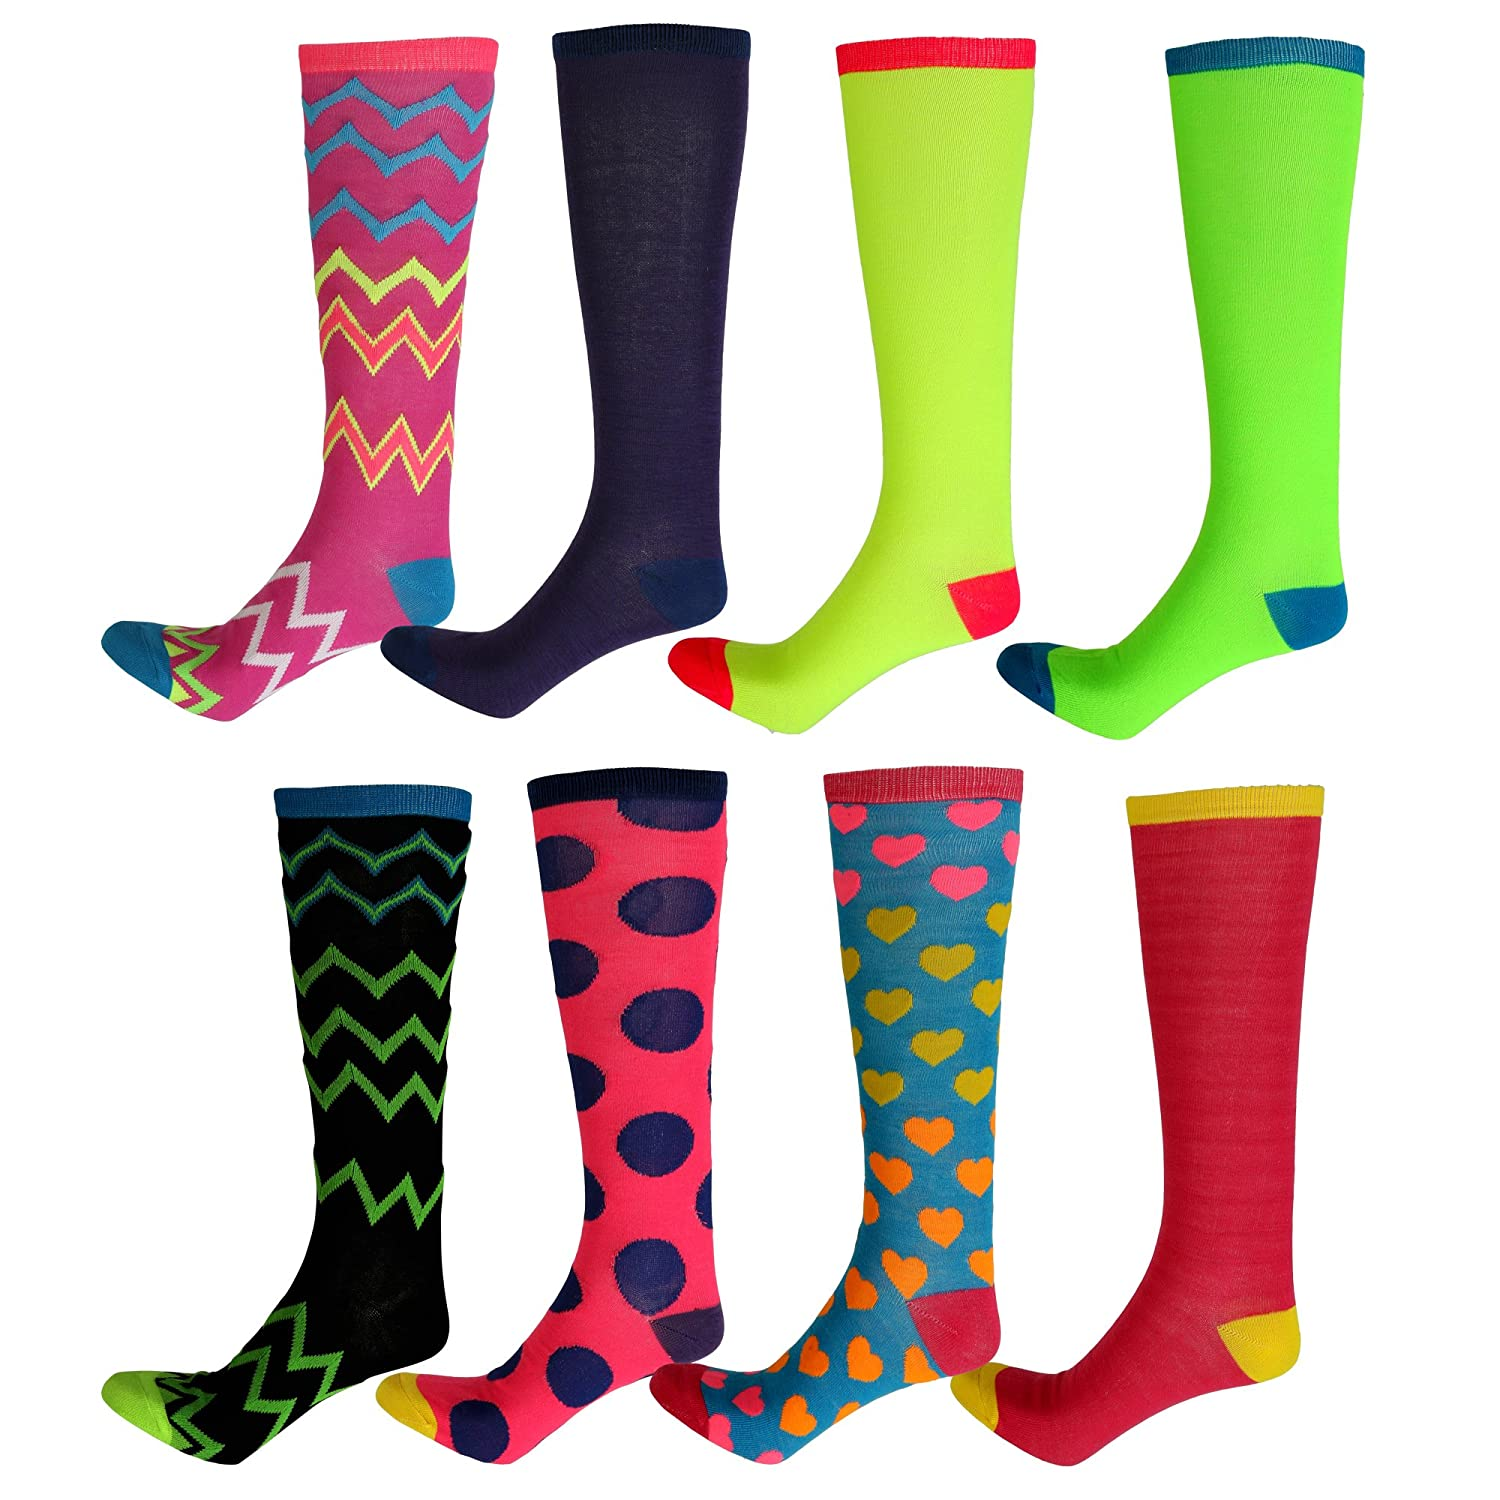 Cheap 4 Pairs Mix Not Match Women's Colorful Knee High Socks free shipping